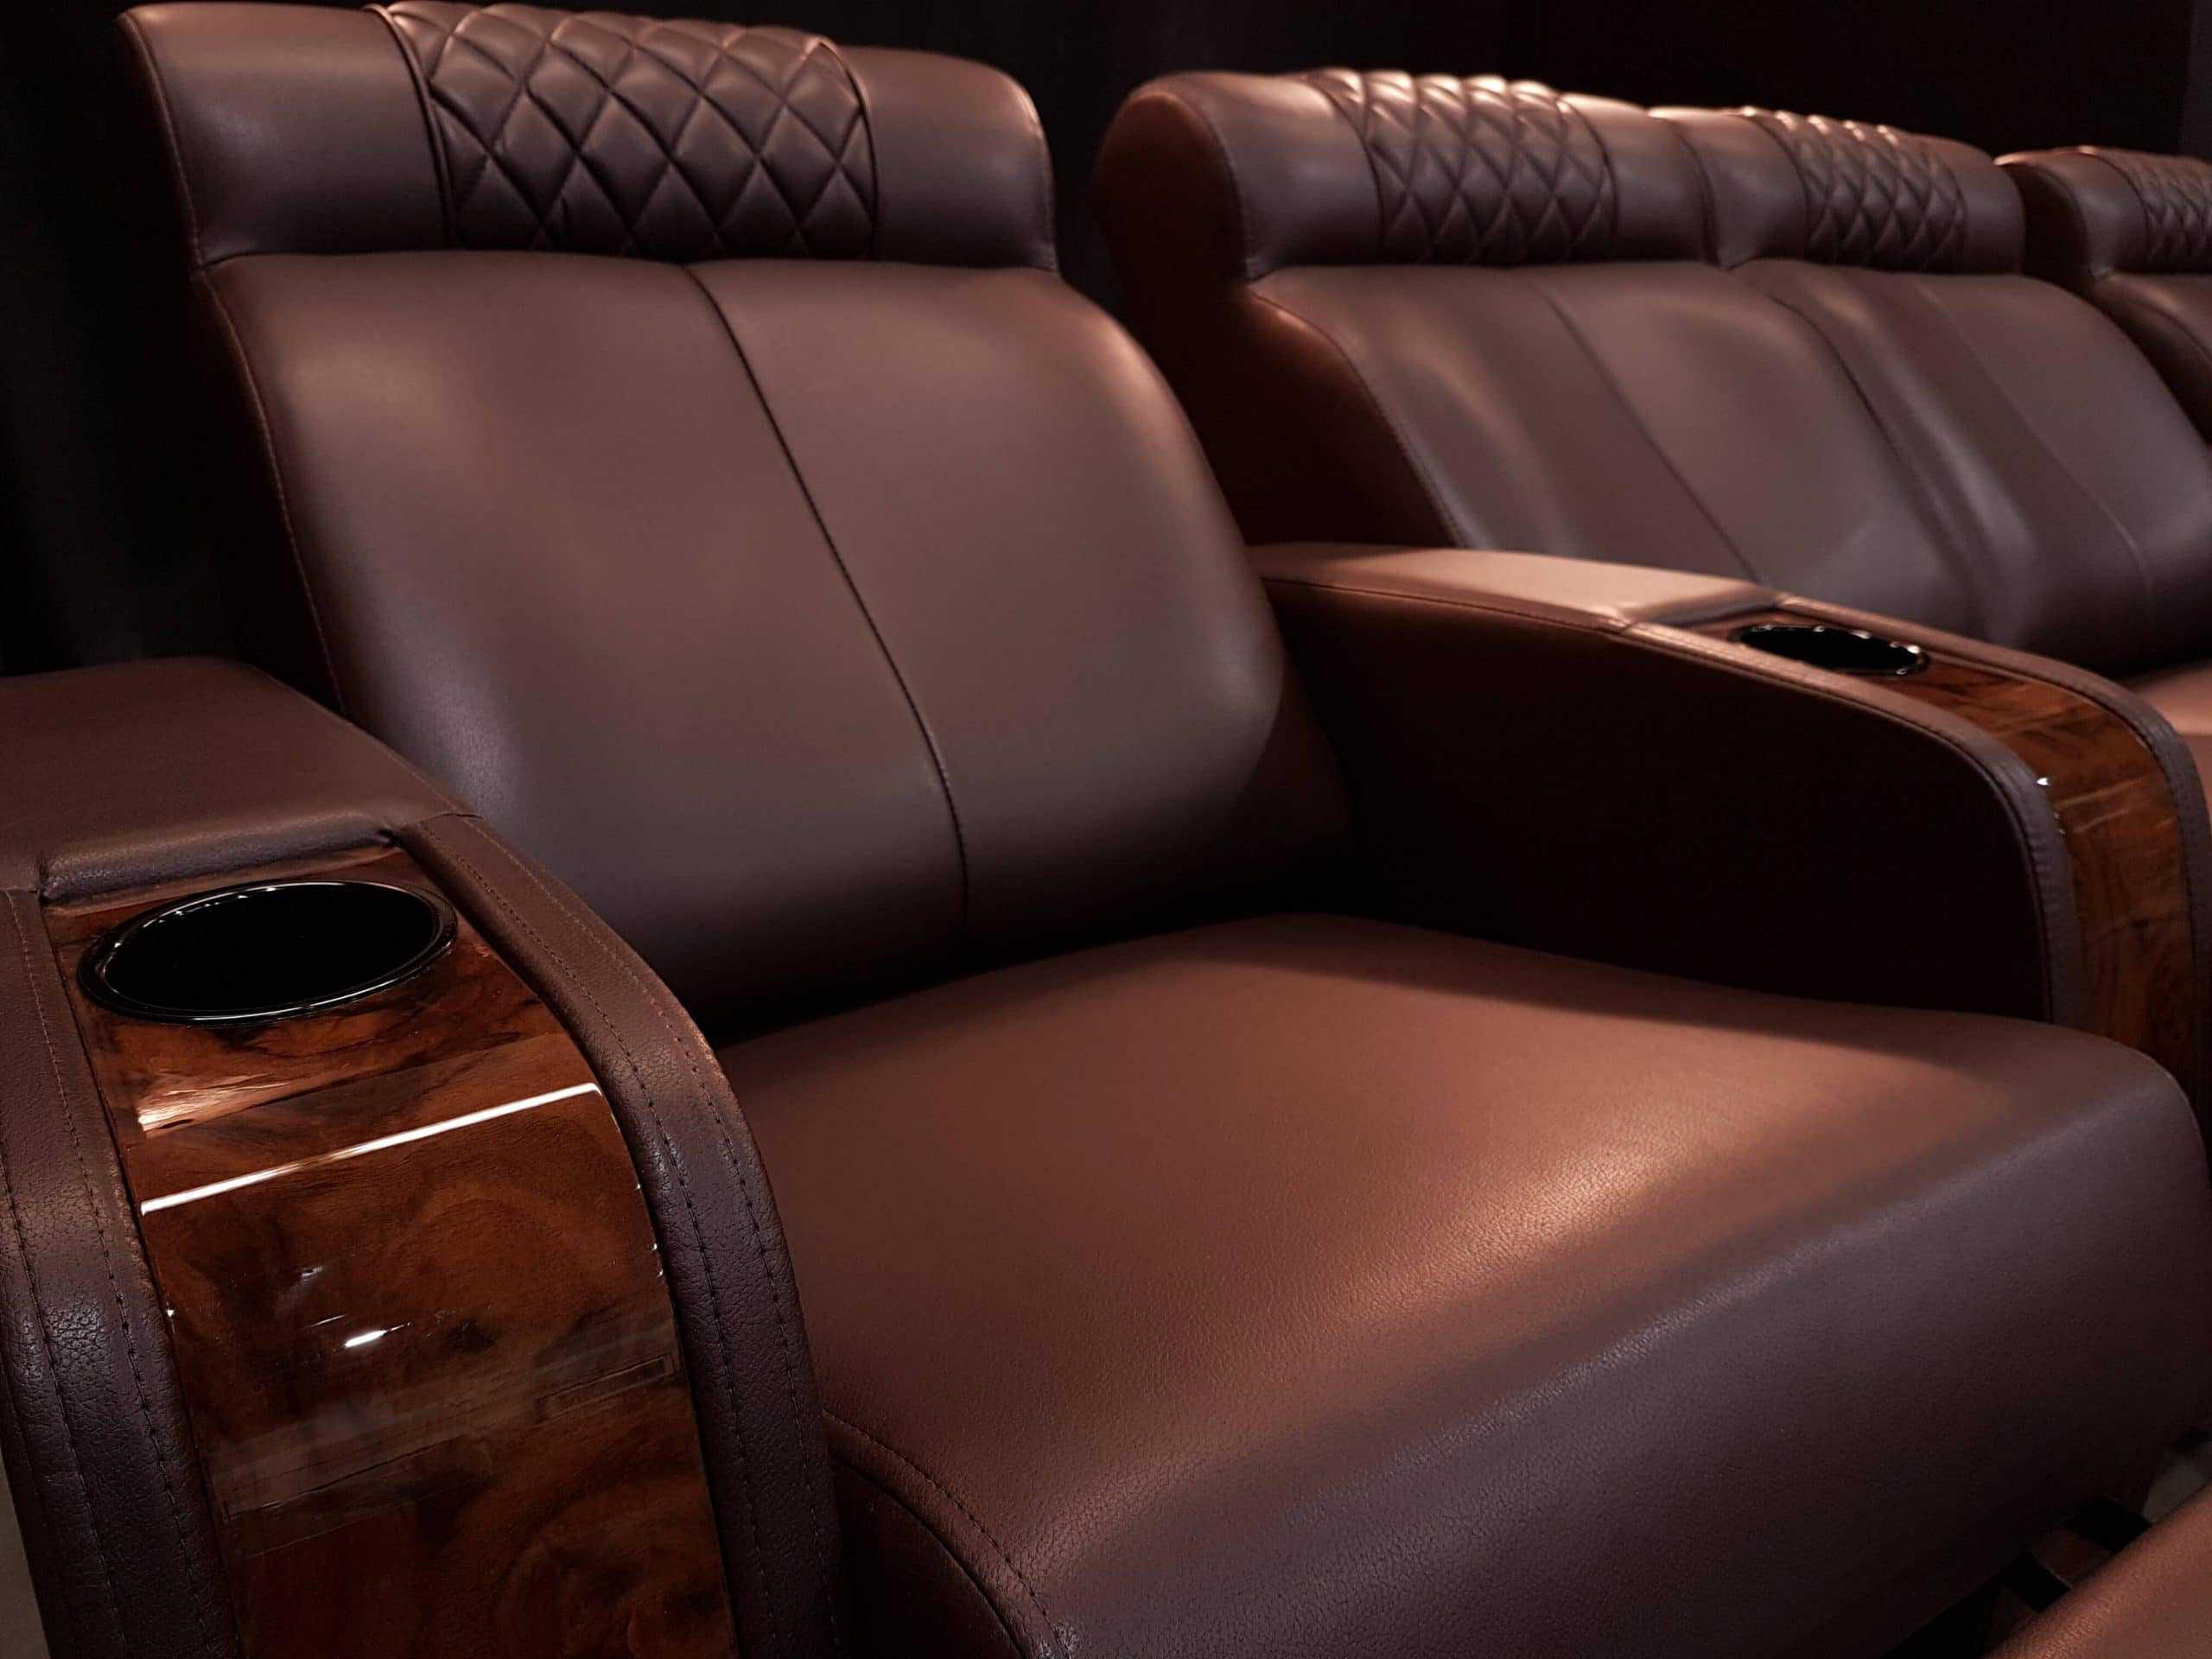 home_theater_recliner chairs (1) j9